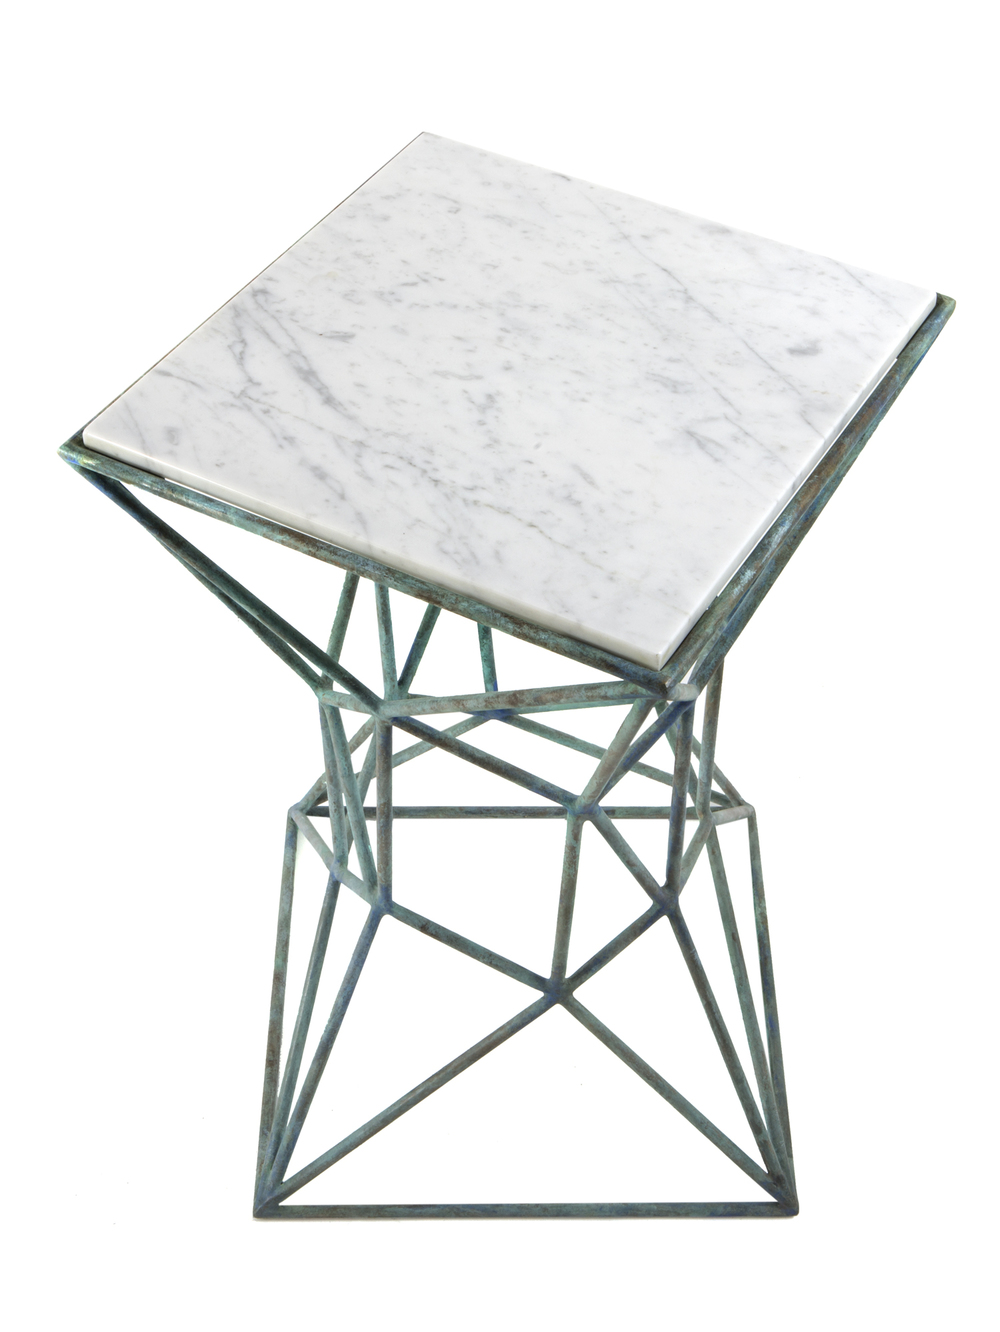 Archimedes_Green Marble Top_02.jpg